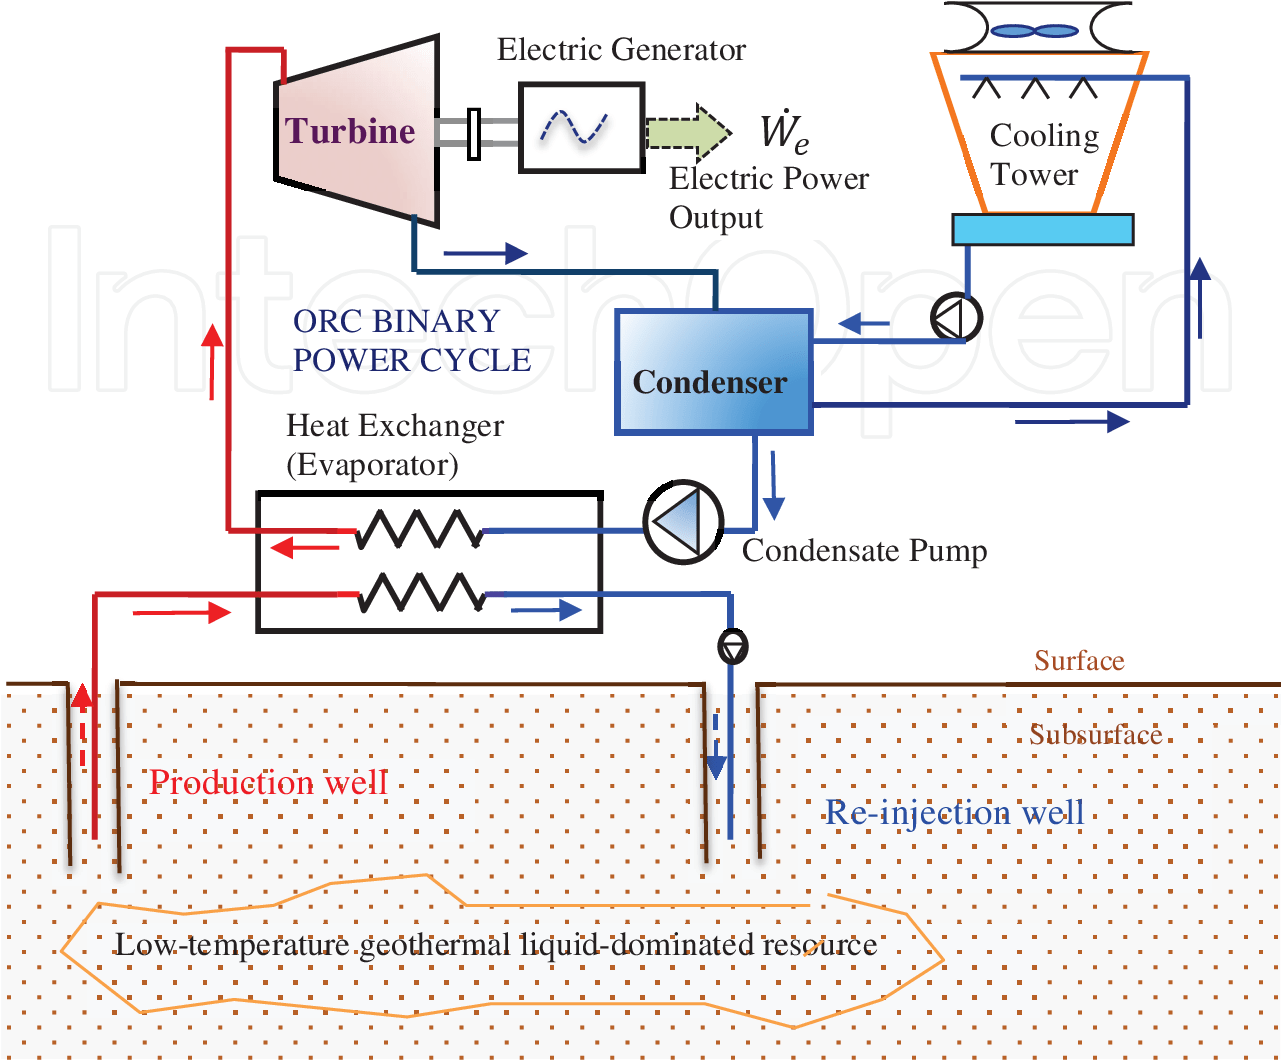 hight resolution of a schematic diagram showing the basic concept of a low temperature geothermal